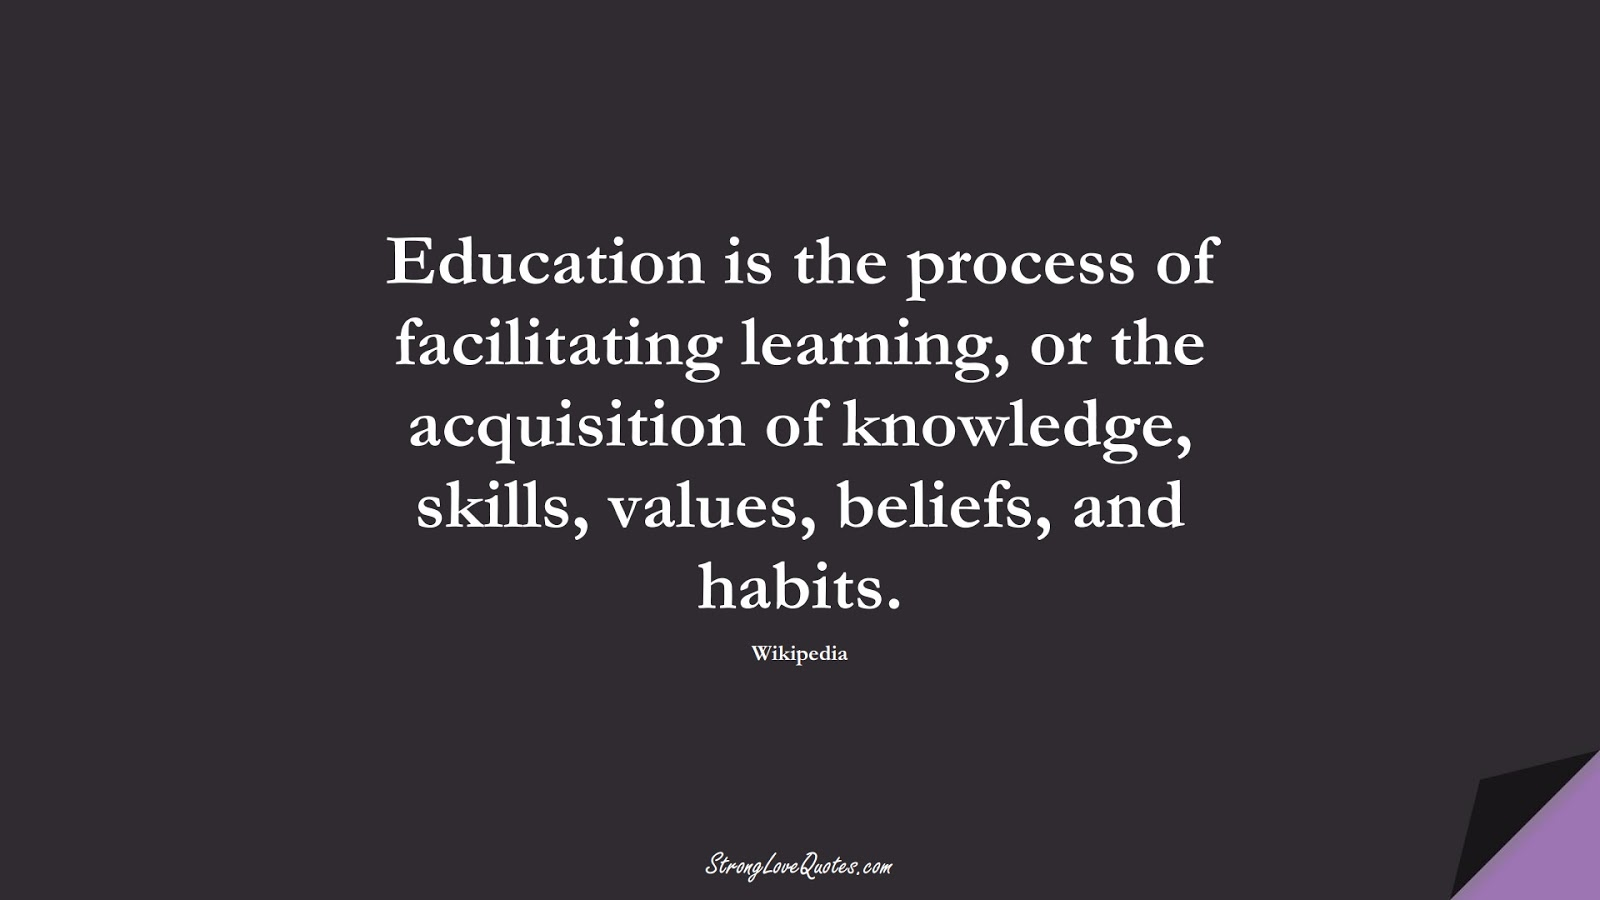 Education is the process of facilitating learning, or the acquisition of knowledge, skills, values, beliefs, and habits. (Wikipedia);  #EducationQuotes